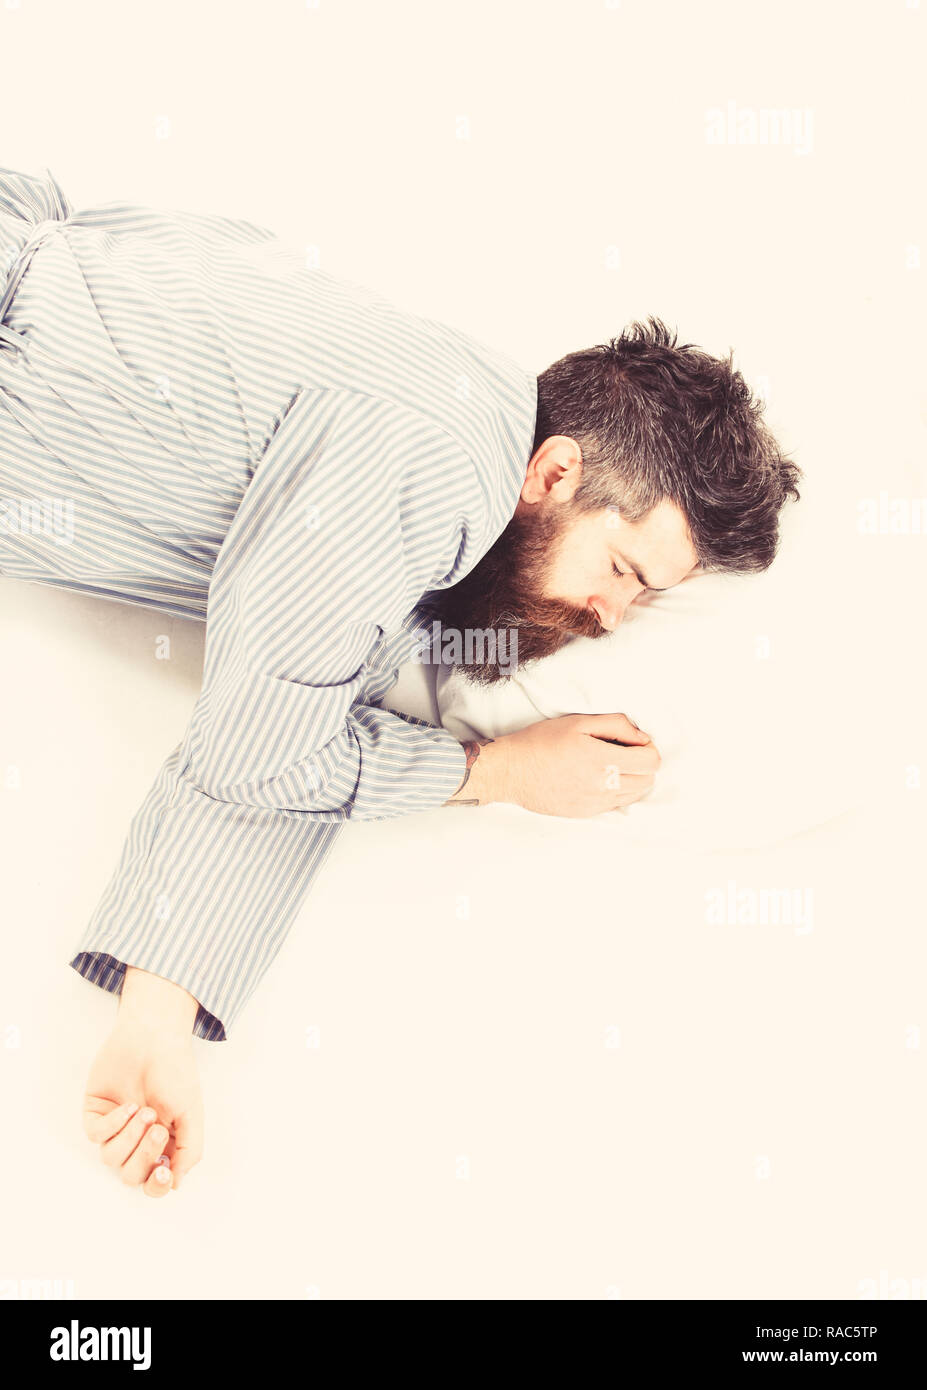 Man with relaxed face, lay on pillow, top view. Hipster with beard fall asleep. Fast asleep concept. Hipster drowsy, exhausted, copy space. Man with beard in deep sleep, white background. - Stock Image